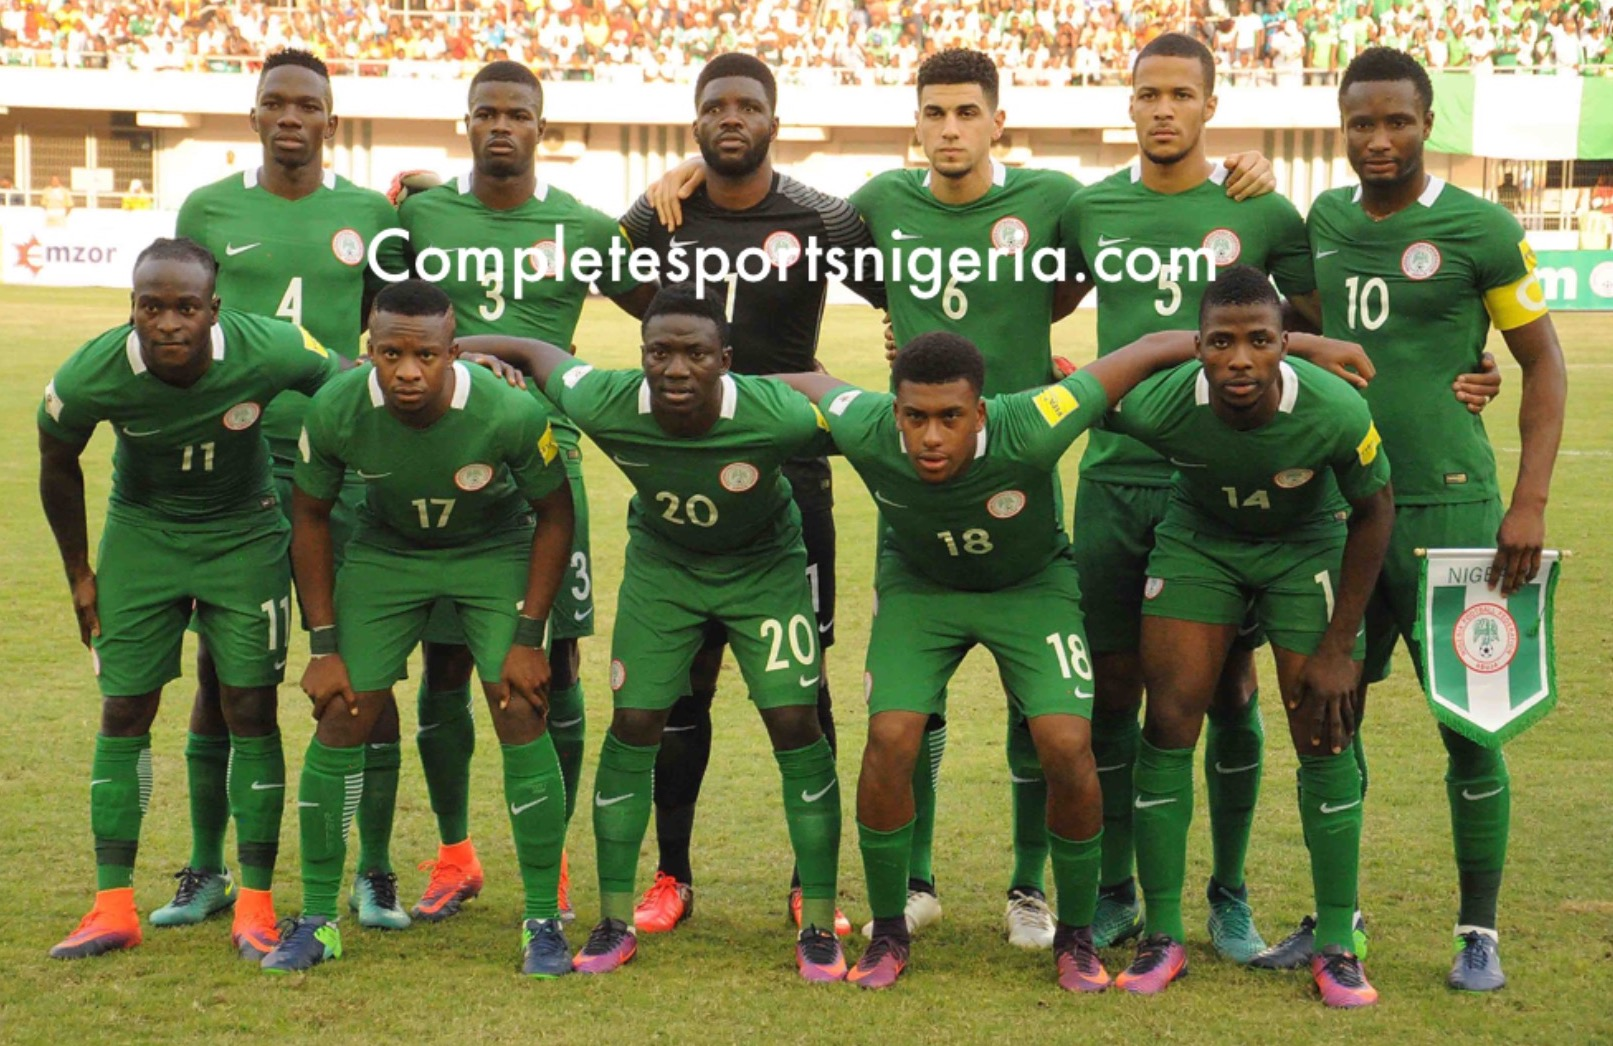 AFCON 2019: Super Eagles Start Qualifiers At Home Vs South Africa